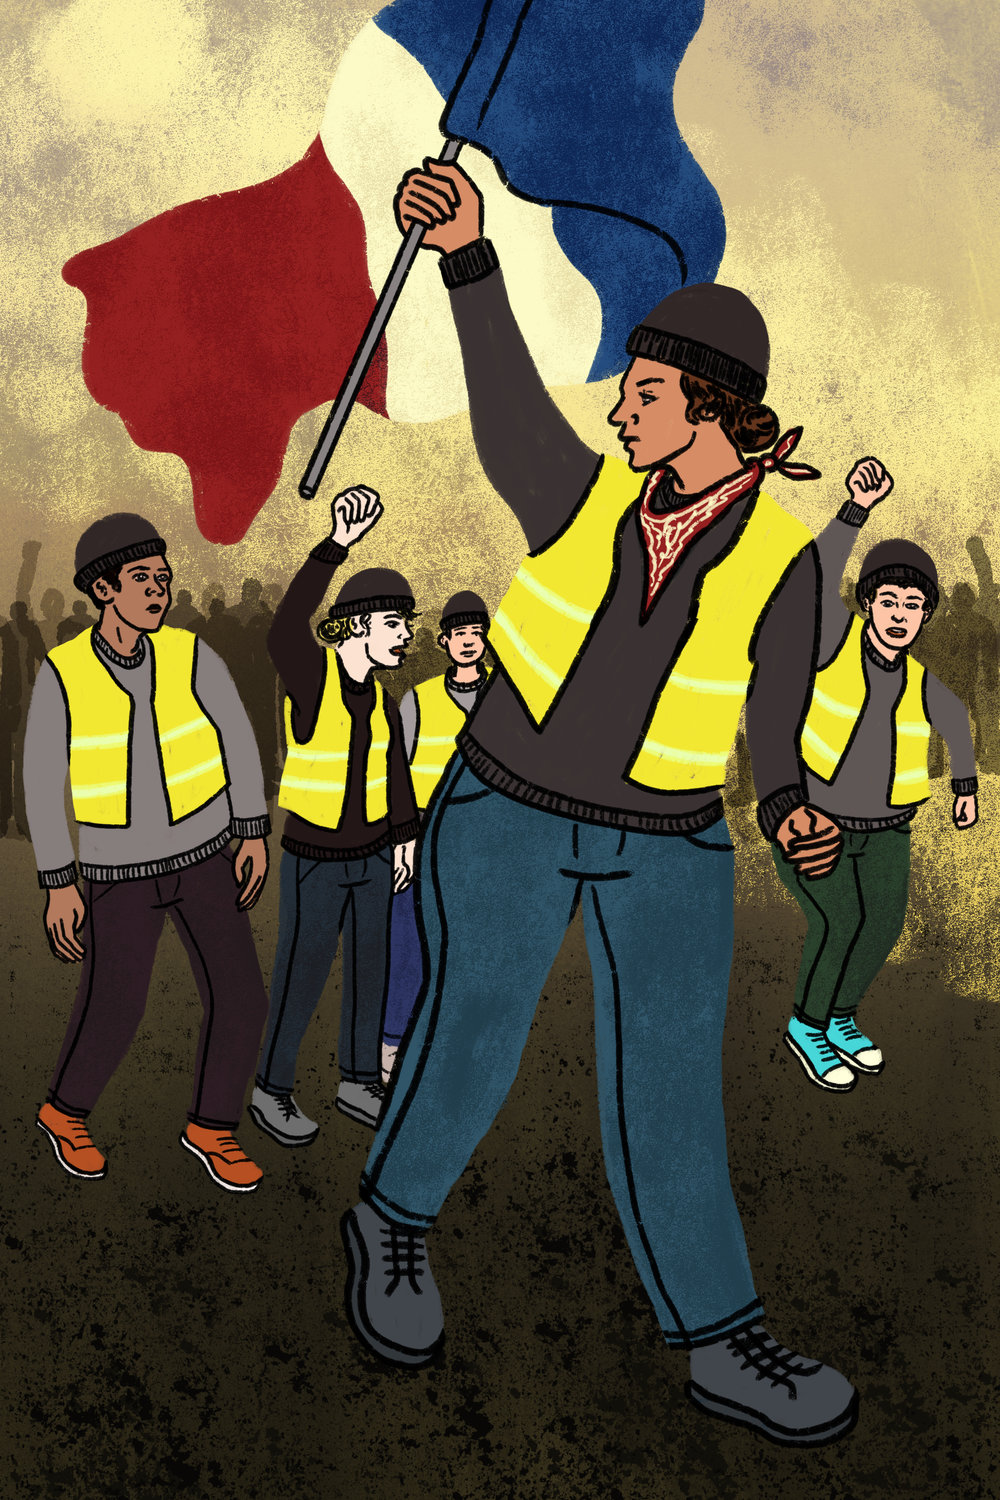 indy_yellowvest_new_01.jpg